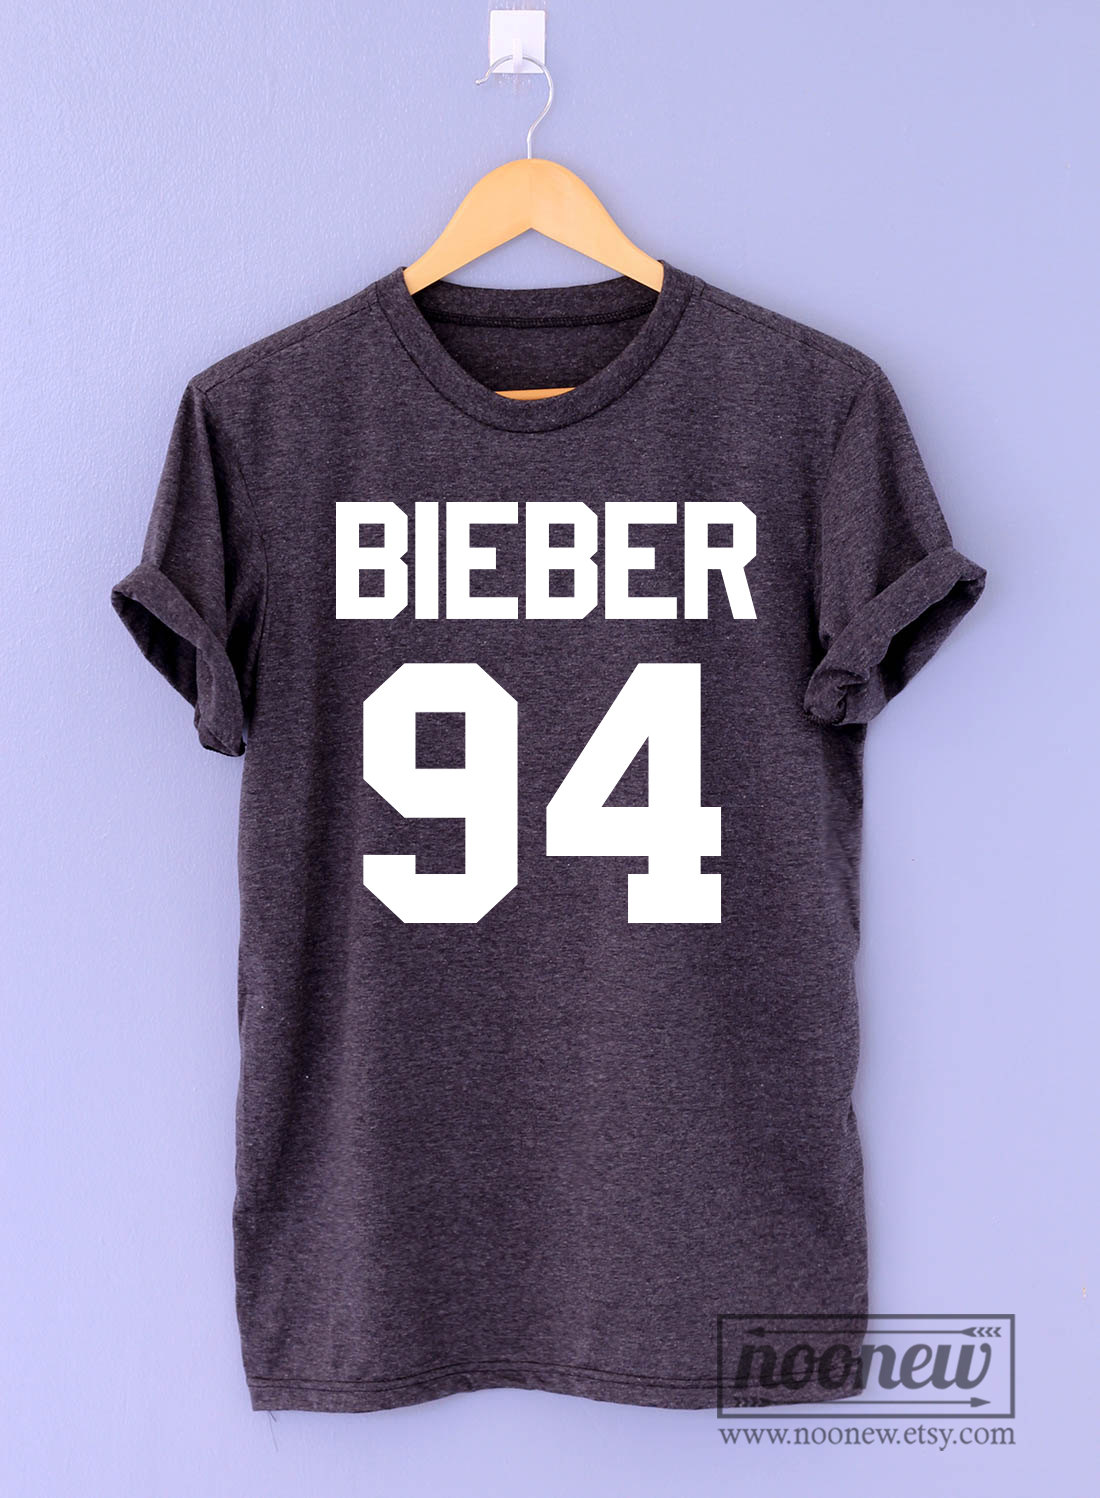 Bieber 94 shirt t shirt t shirt tshirt tee shirt unisex for Justin bieber black and white shirt